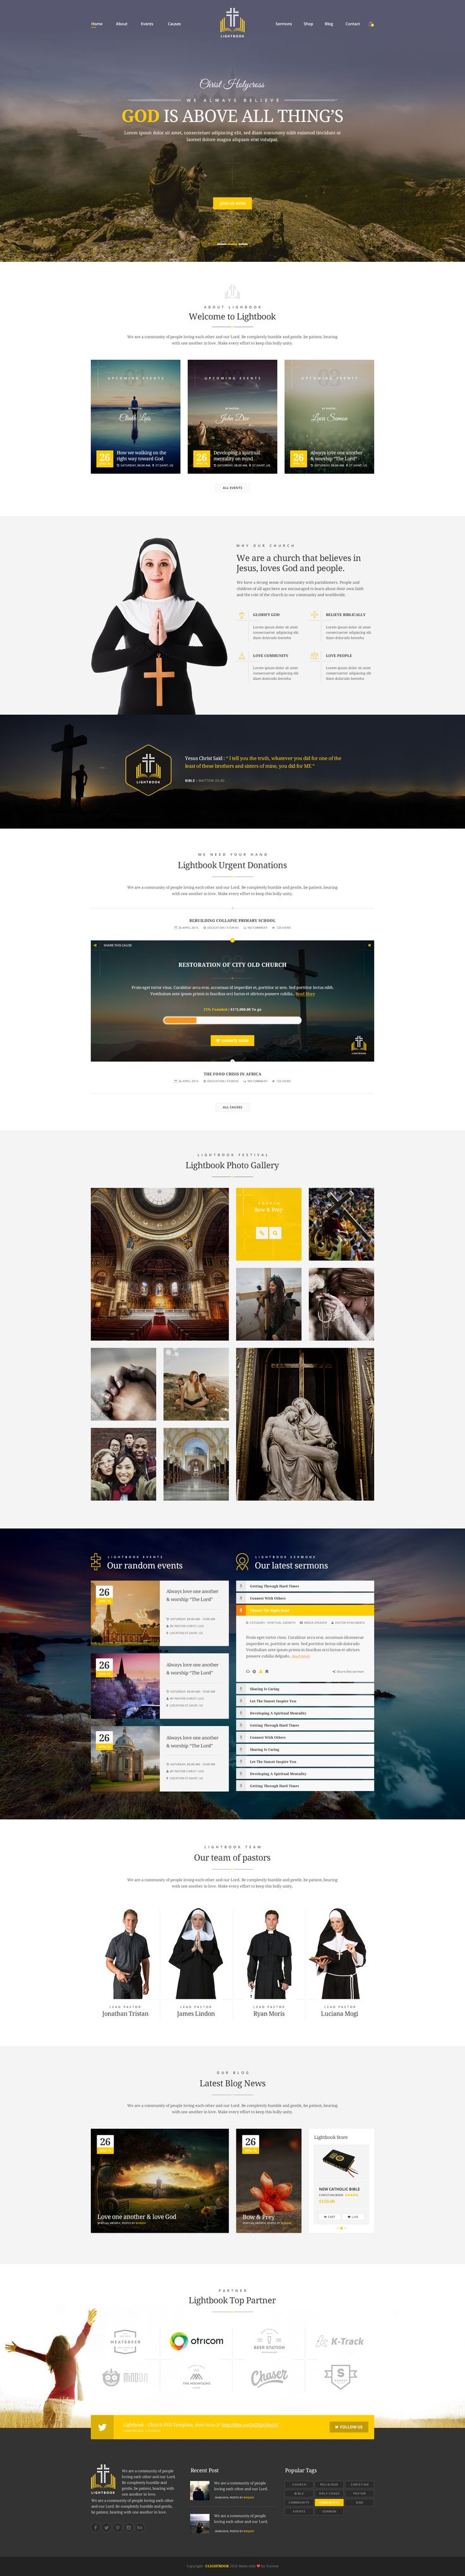 74 best Website Graphics images on Pinterest | Web layout, Website ...